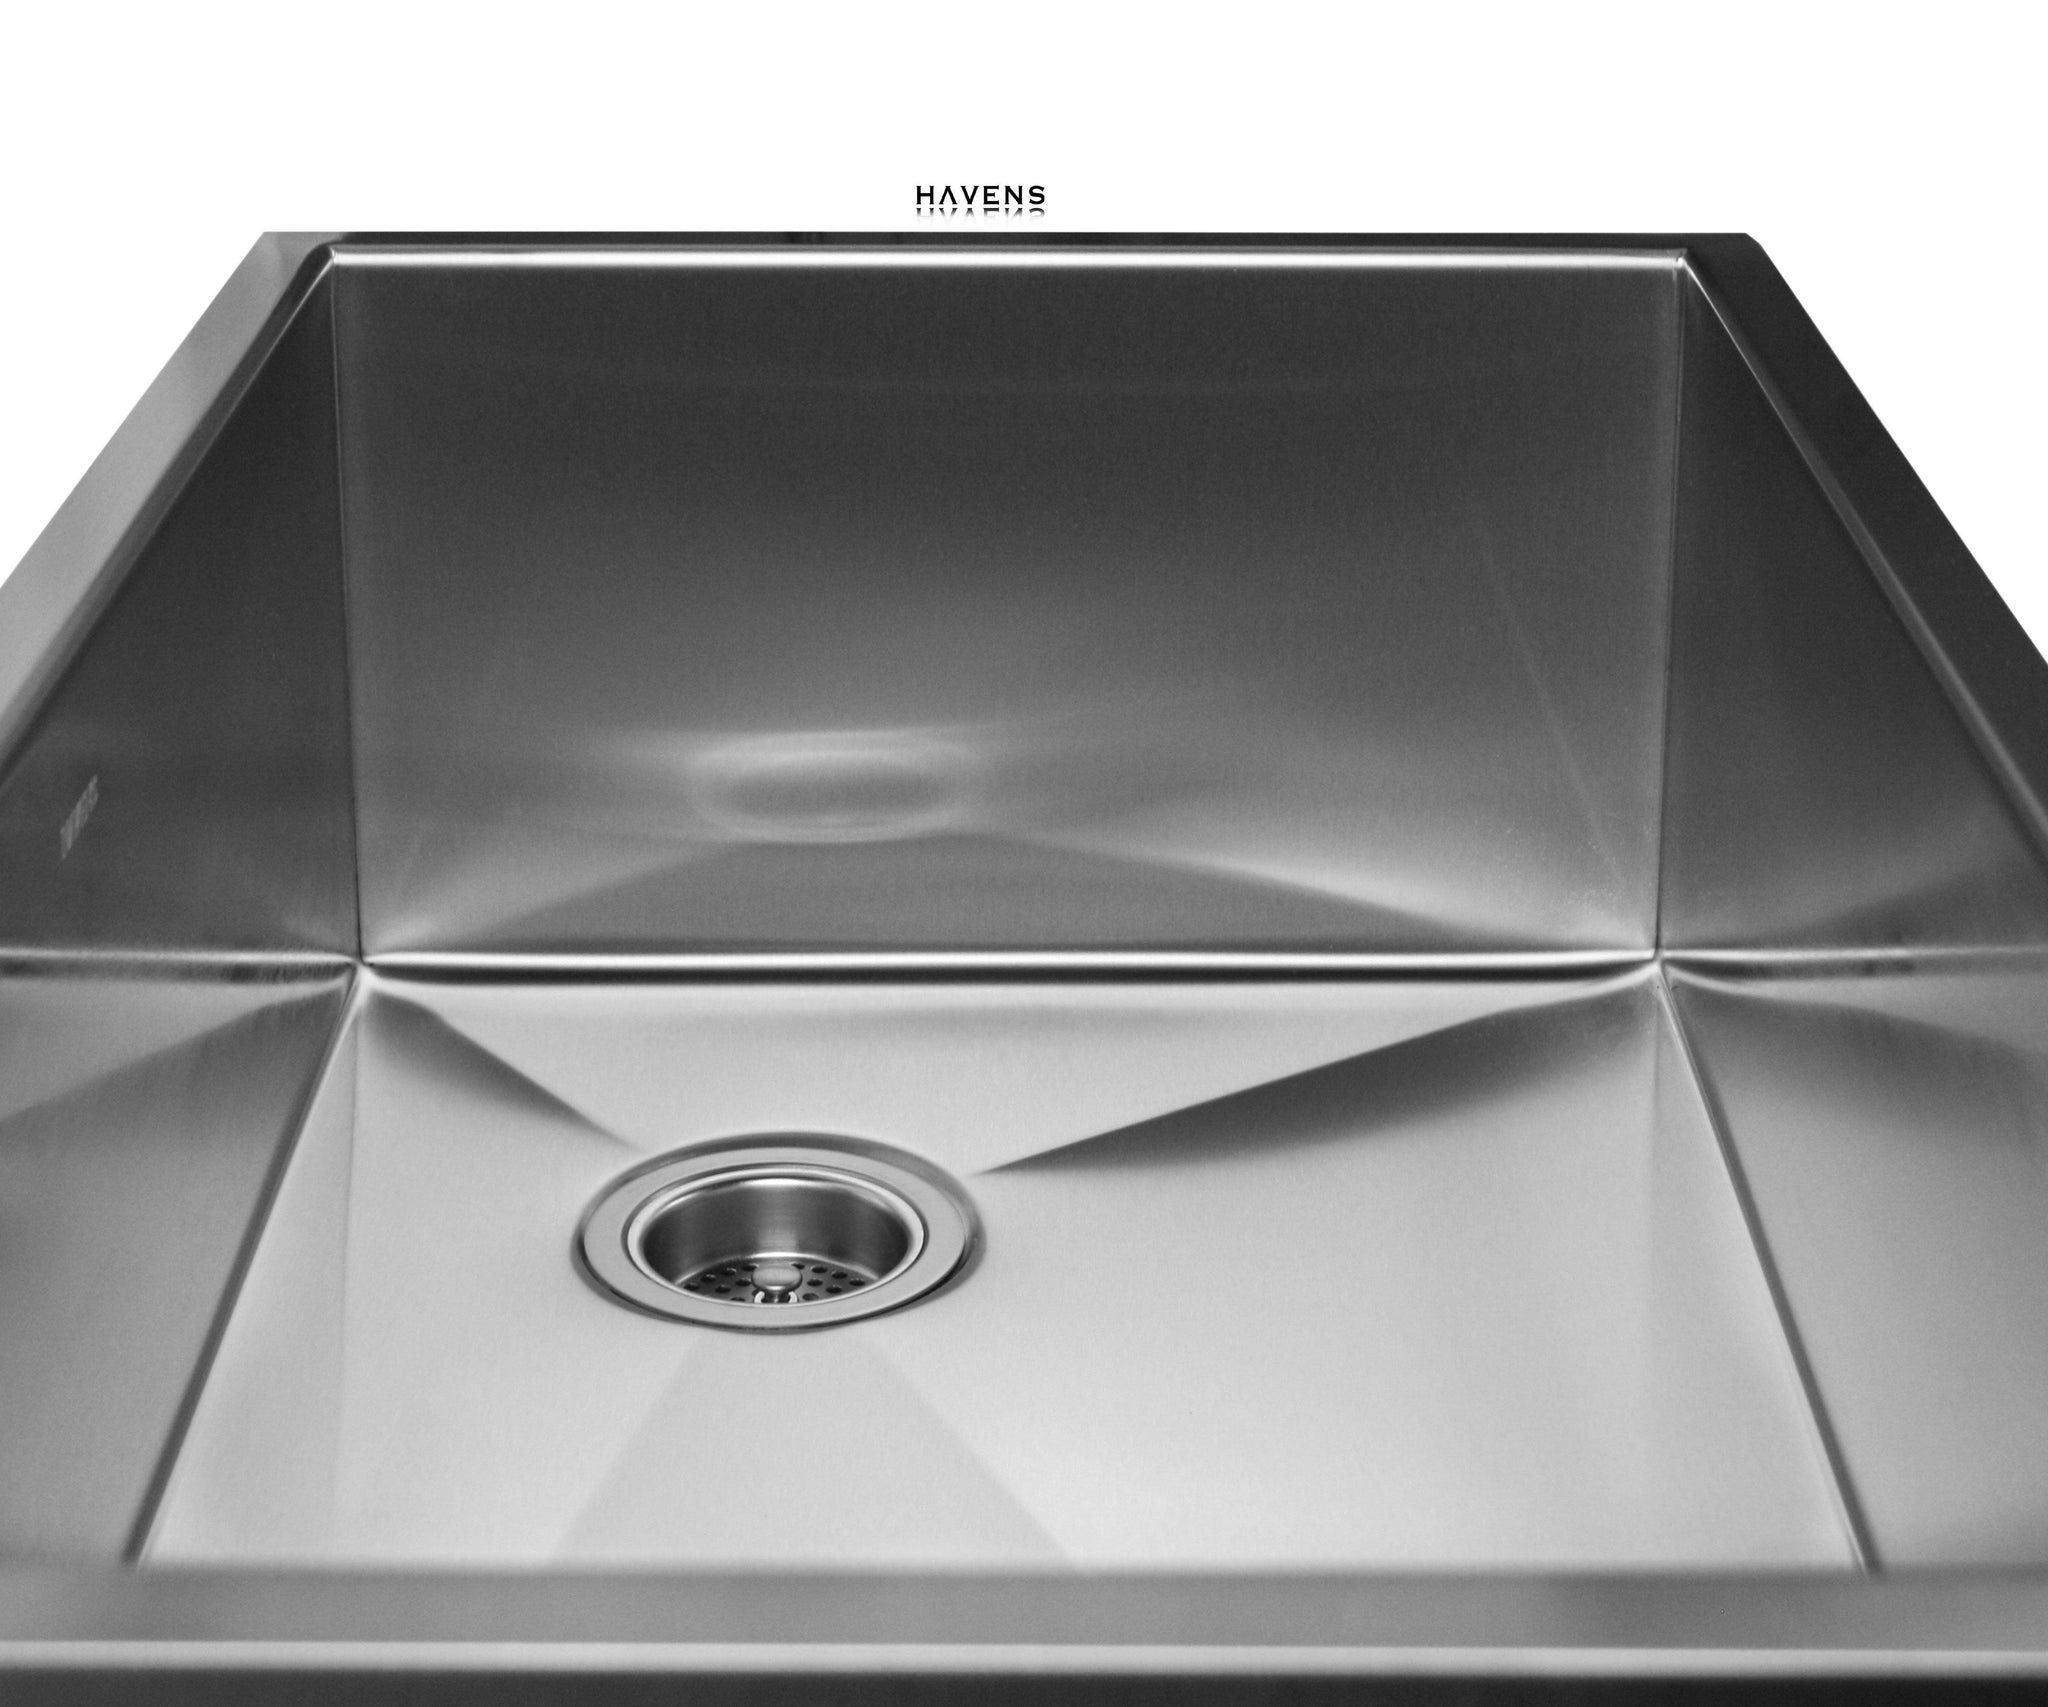 Brushed stainless steel Heritage sink with a beautiful finish.